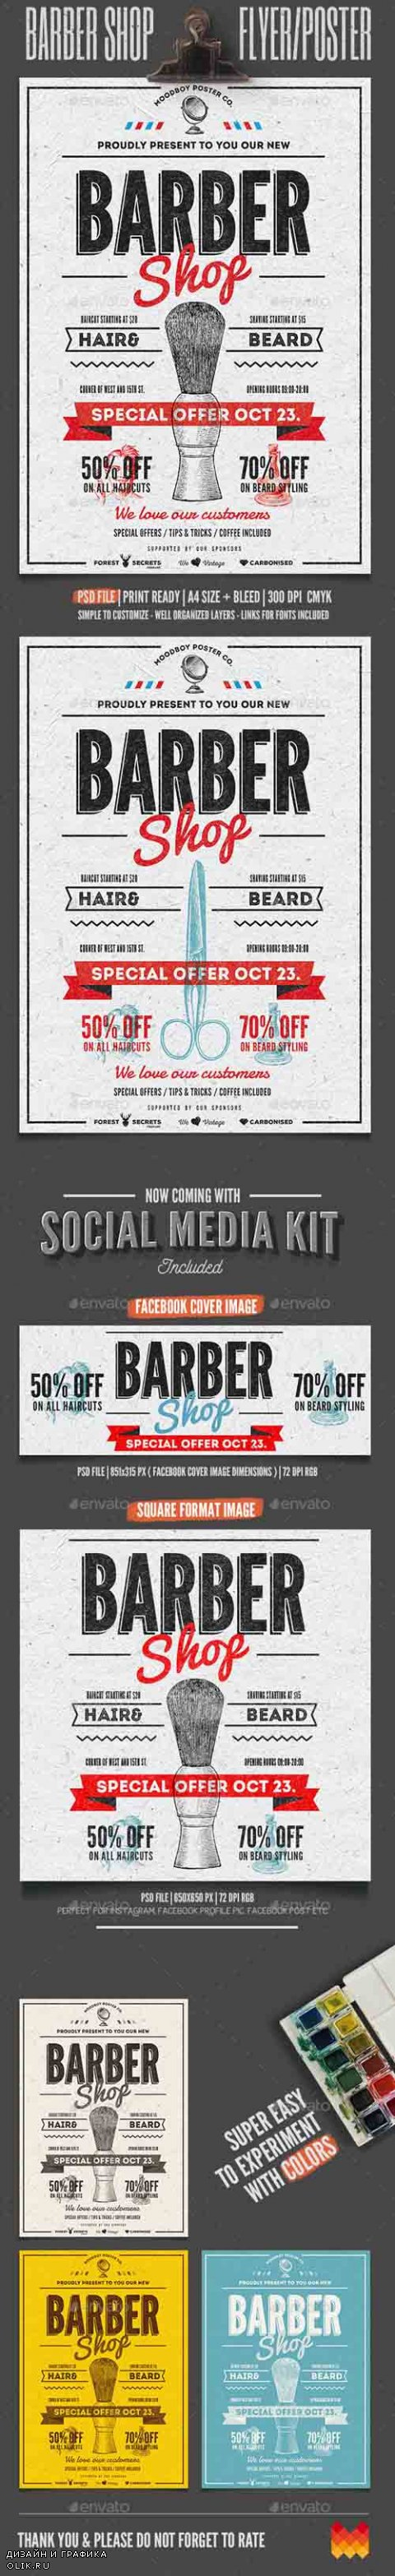 Barber Shop Vintage Flyer/Poster 12850611